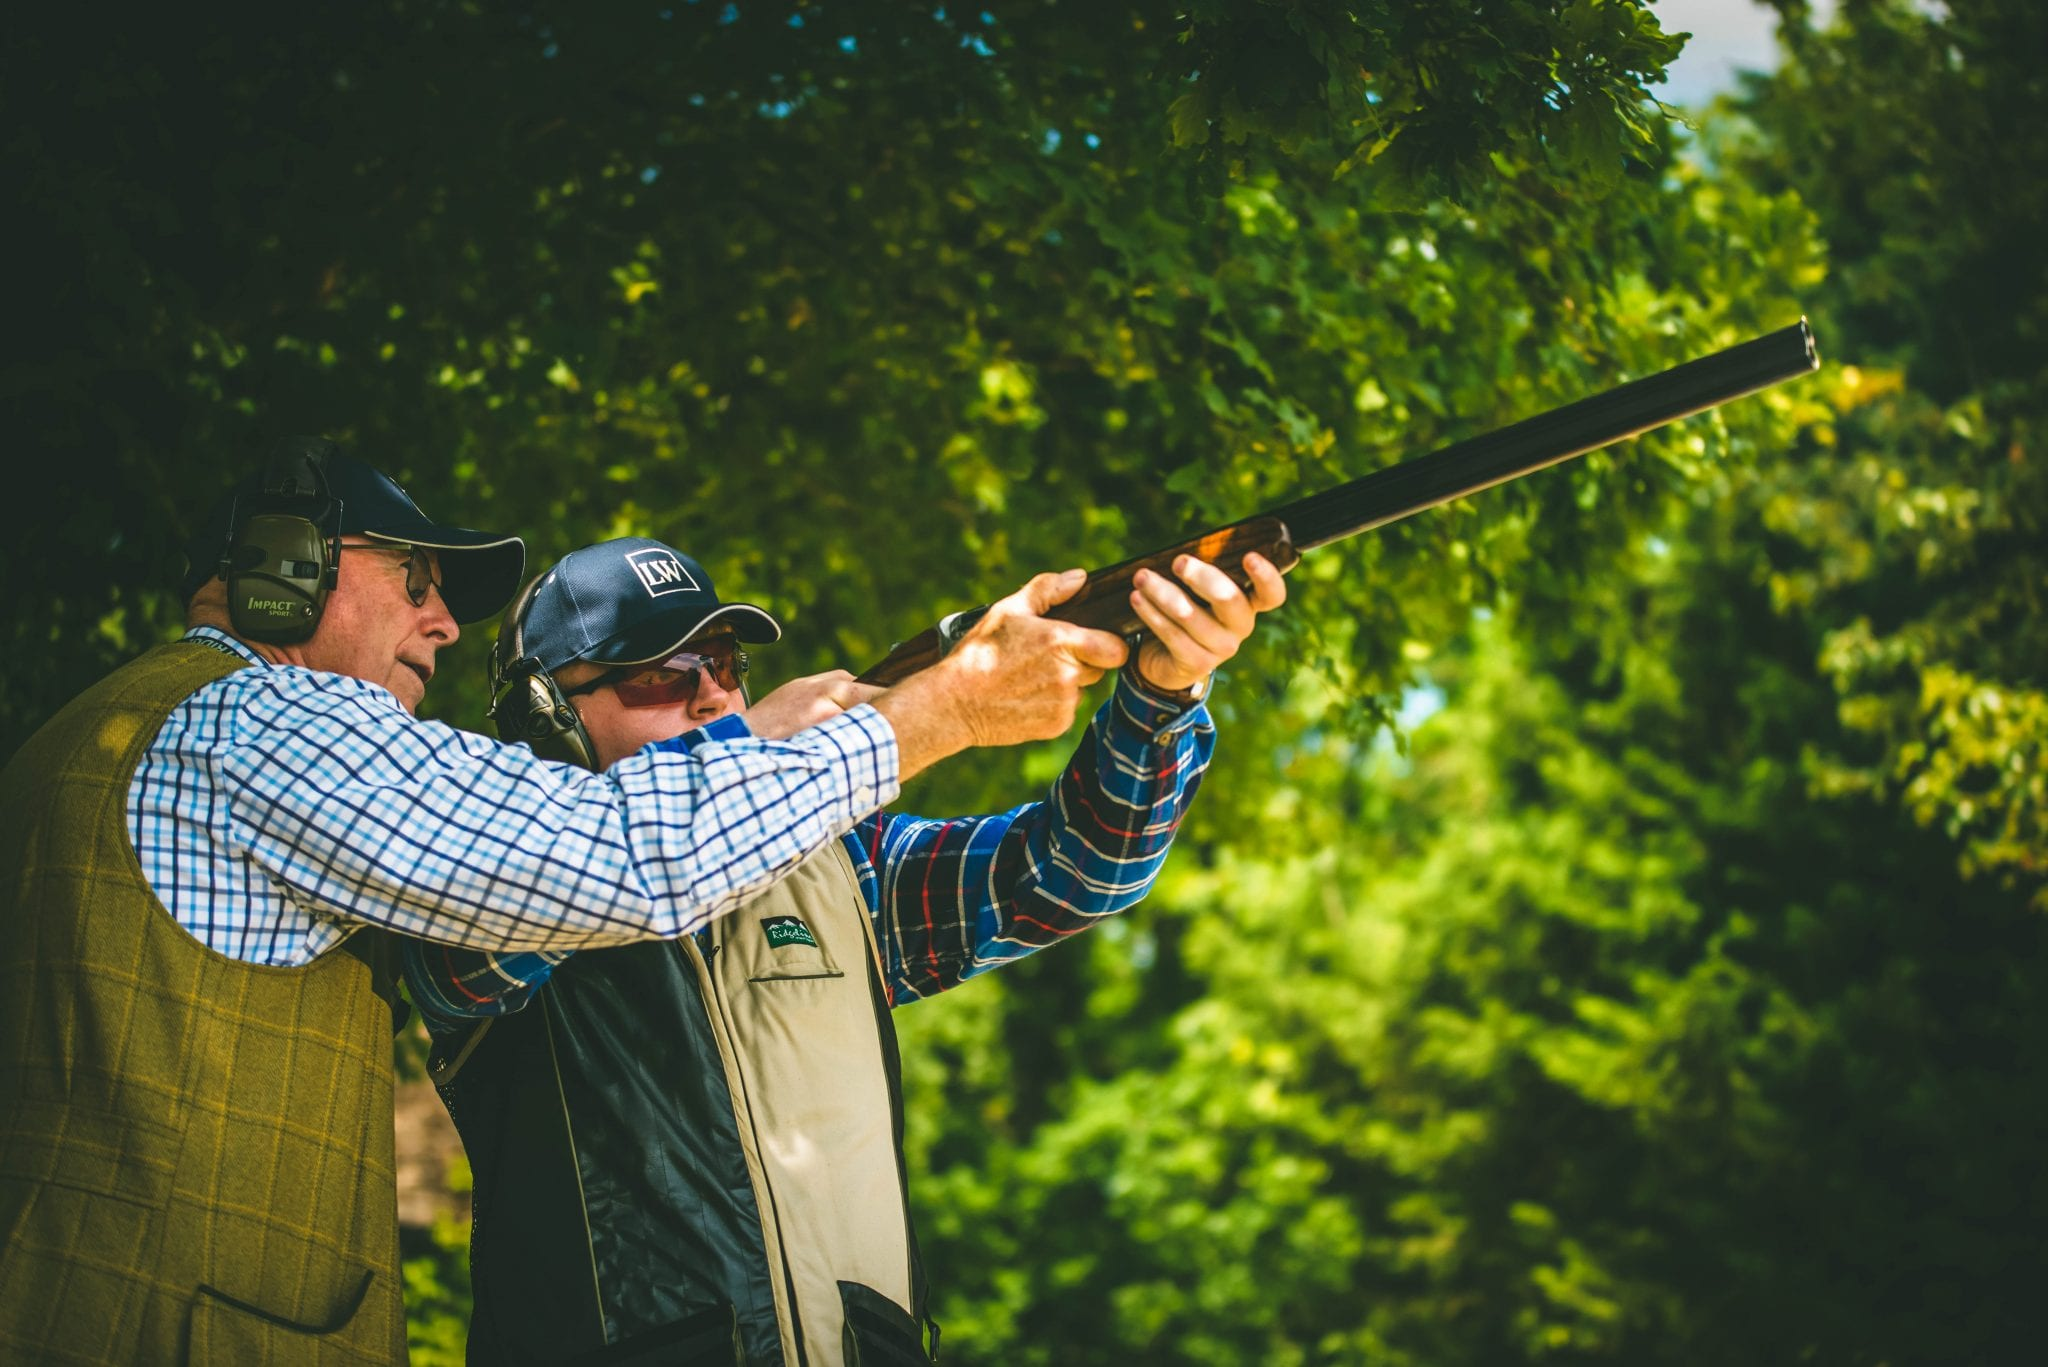 Lady's Wood owner and instructor Ernie Hemmings instructs a customer during a clay shooting lesson and helps him learn to shoot